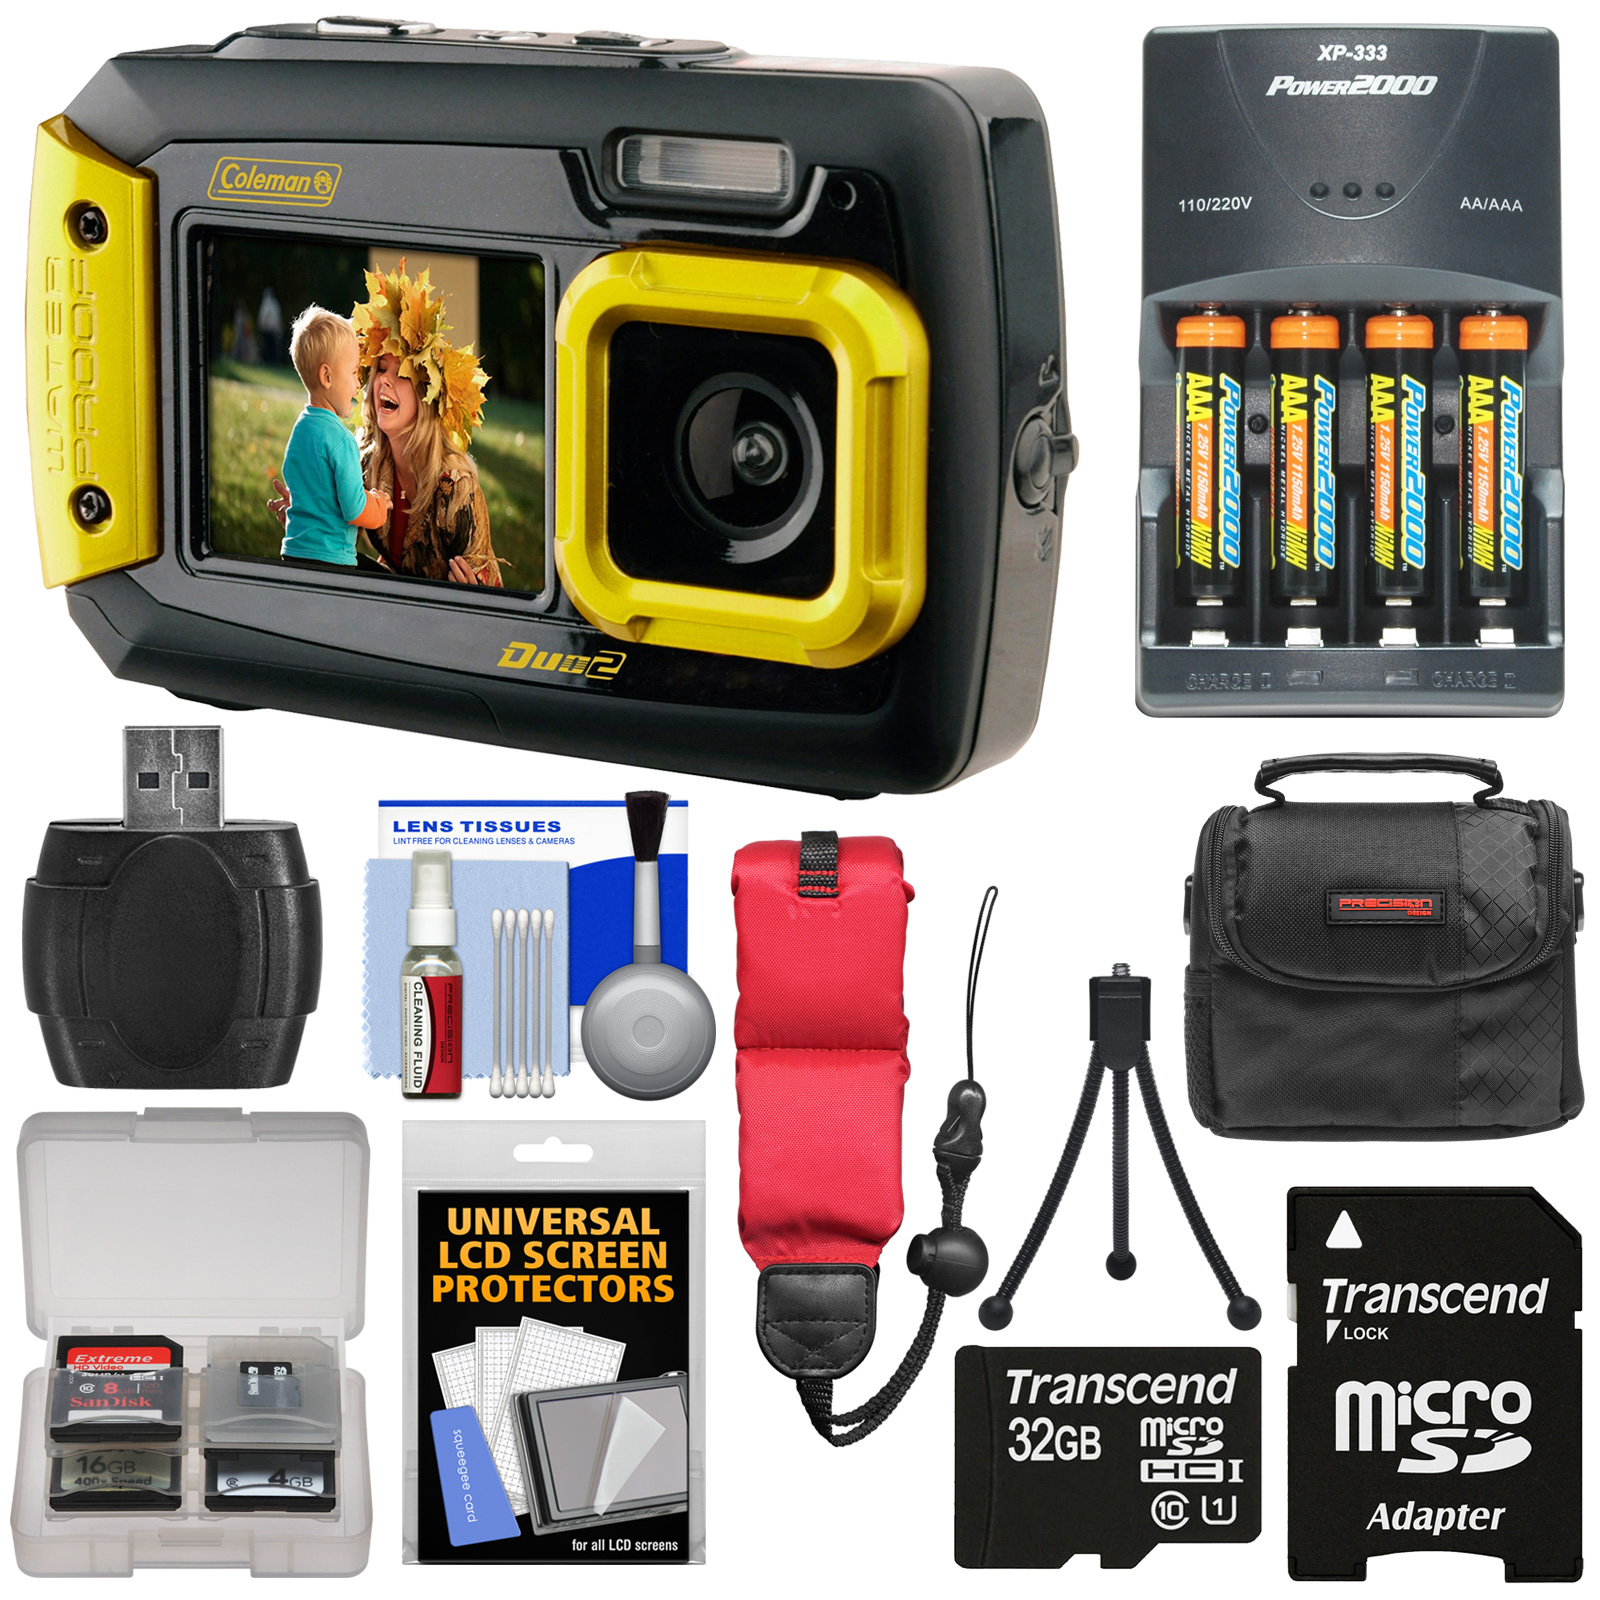 Coleman Duo 2V9WP Dual Screen Shock & Waterproof Digital Camera (Yellow) with 32GB Card + Batteries & Charger + Case + Float Strap + Kit